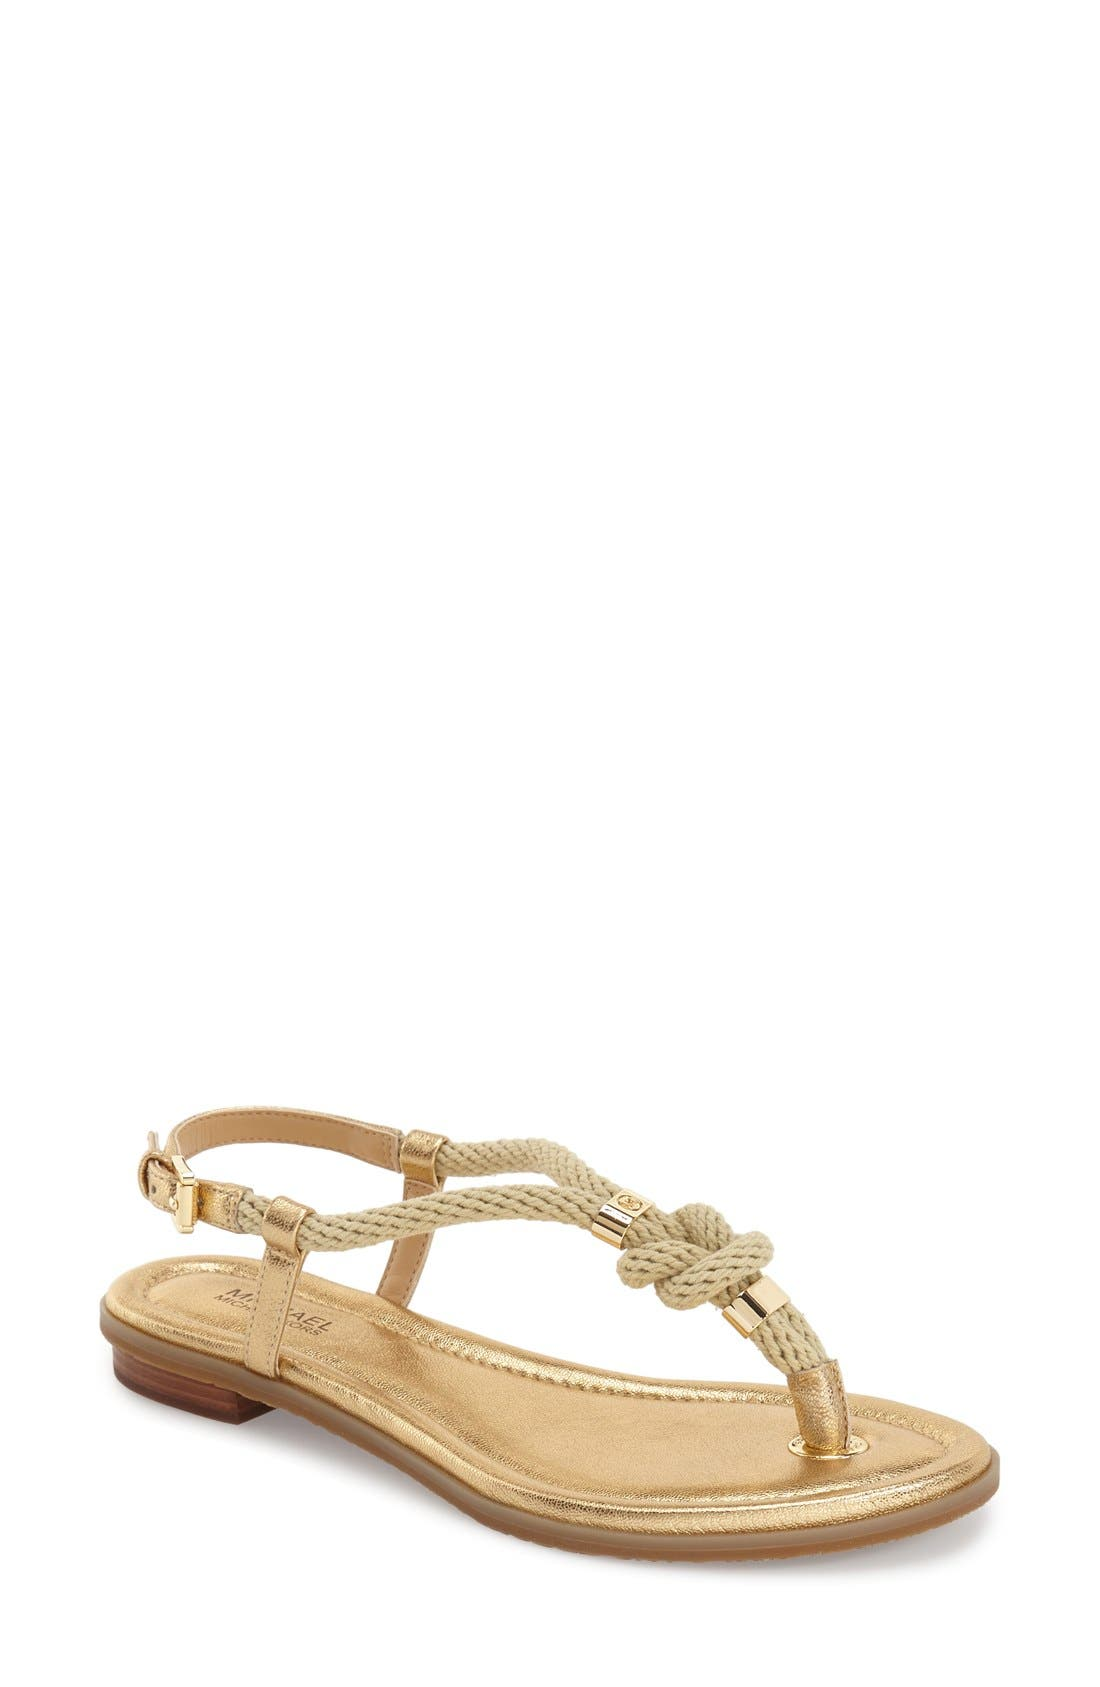 'Holly' Sandal,                             Main thumbnail 1, color,                             Pale Gold